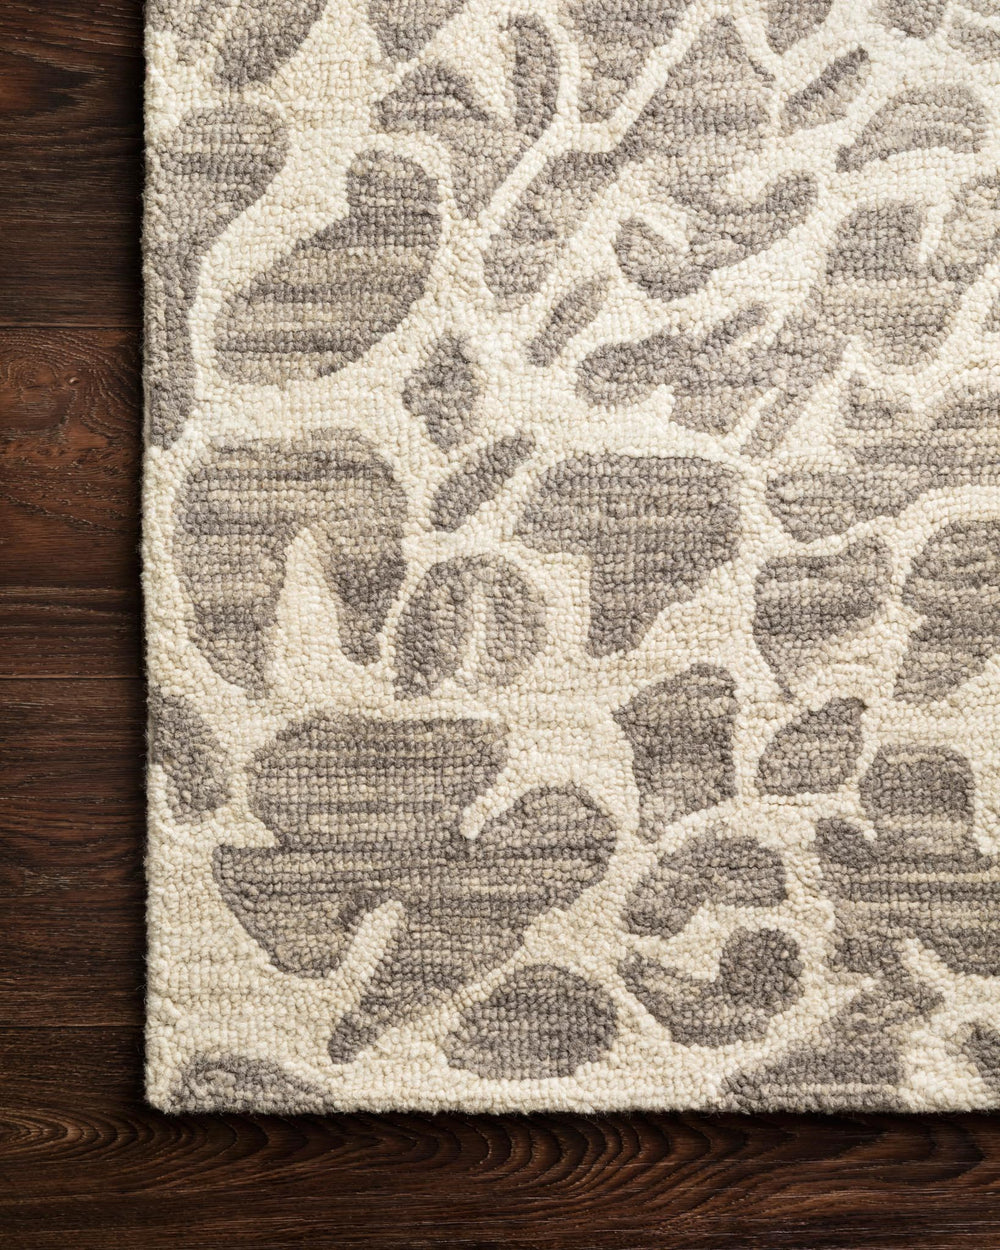 Masai Grey/Ivory Rug - Amethyst Home Hooked of 100% wool, this Masai Collection is a softer side of the savannah brought to life by artisans in India. Masai is a beautiful contemporary rug with contrasting hues and is a chic twist on the classic animal print.